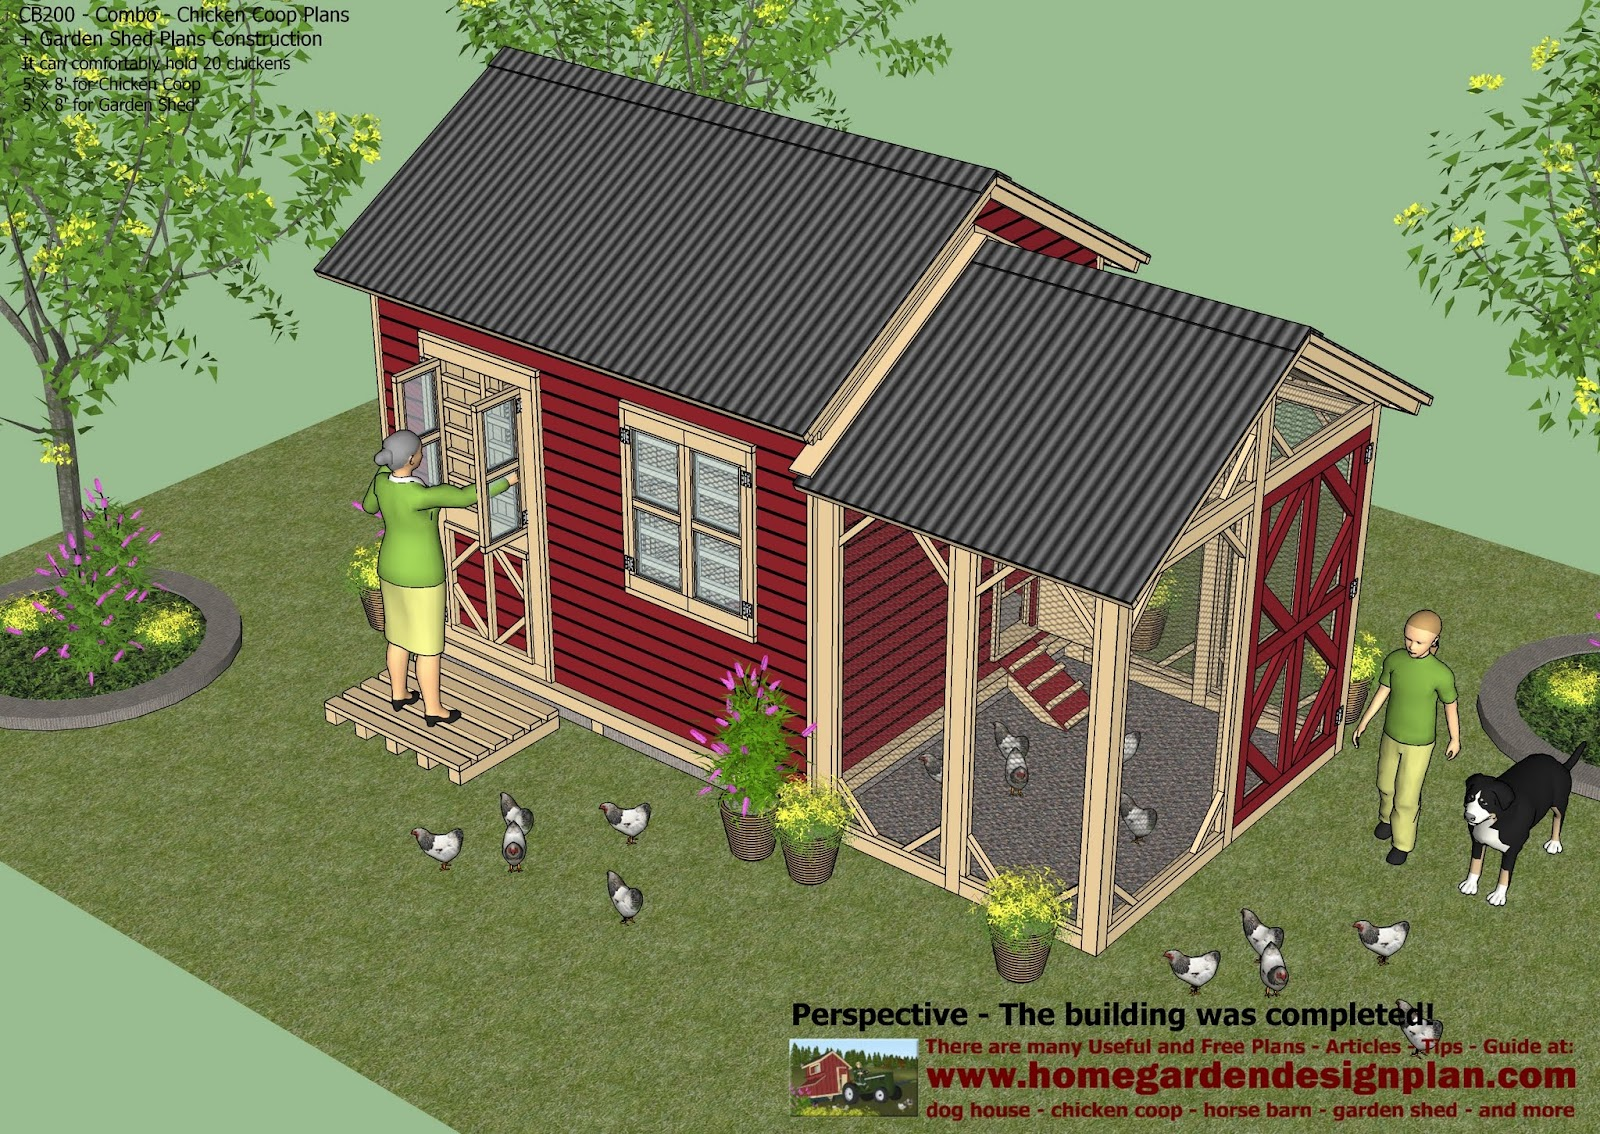 Home garden plans cb200 combo plans chicken coop for 2 storage house